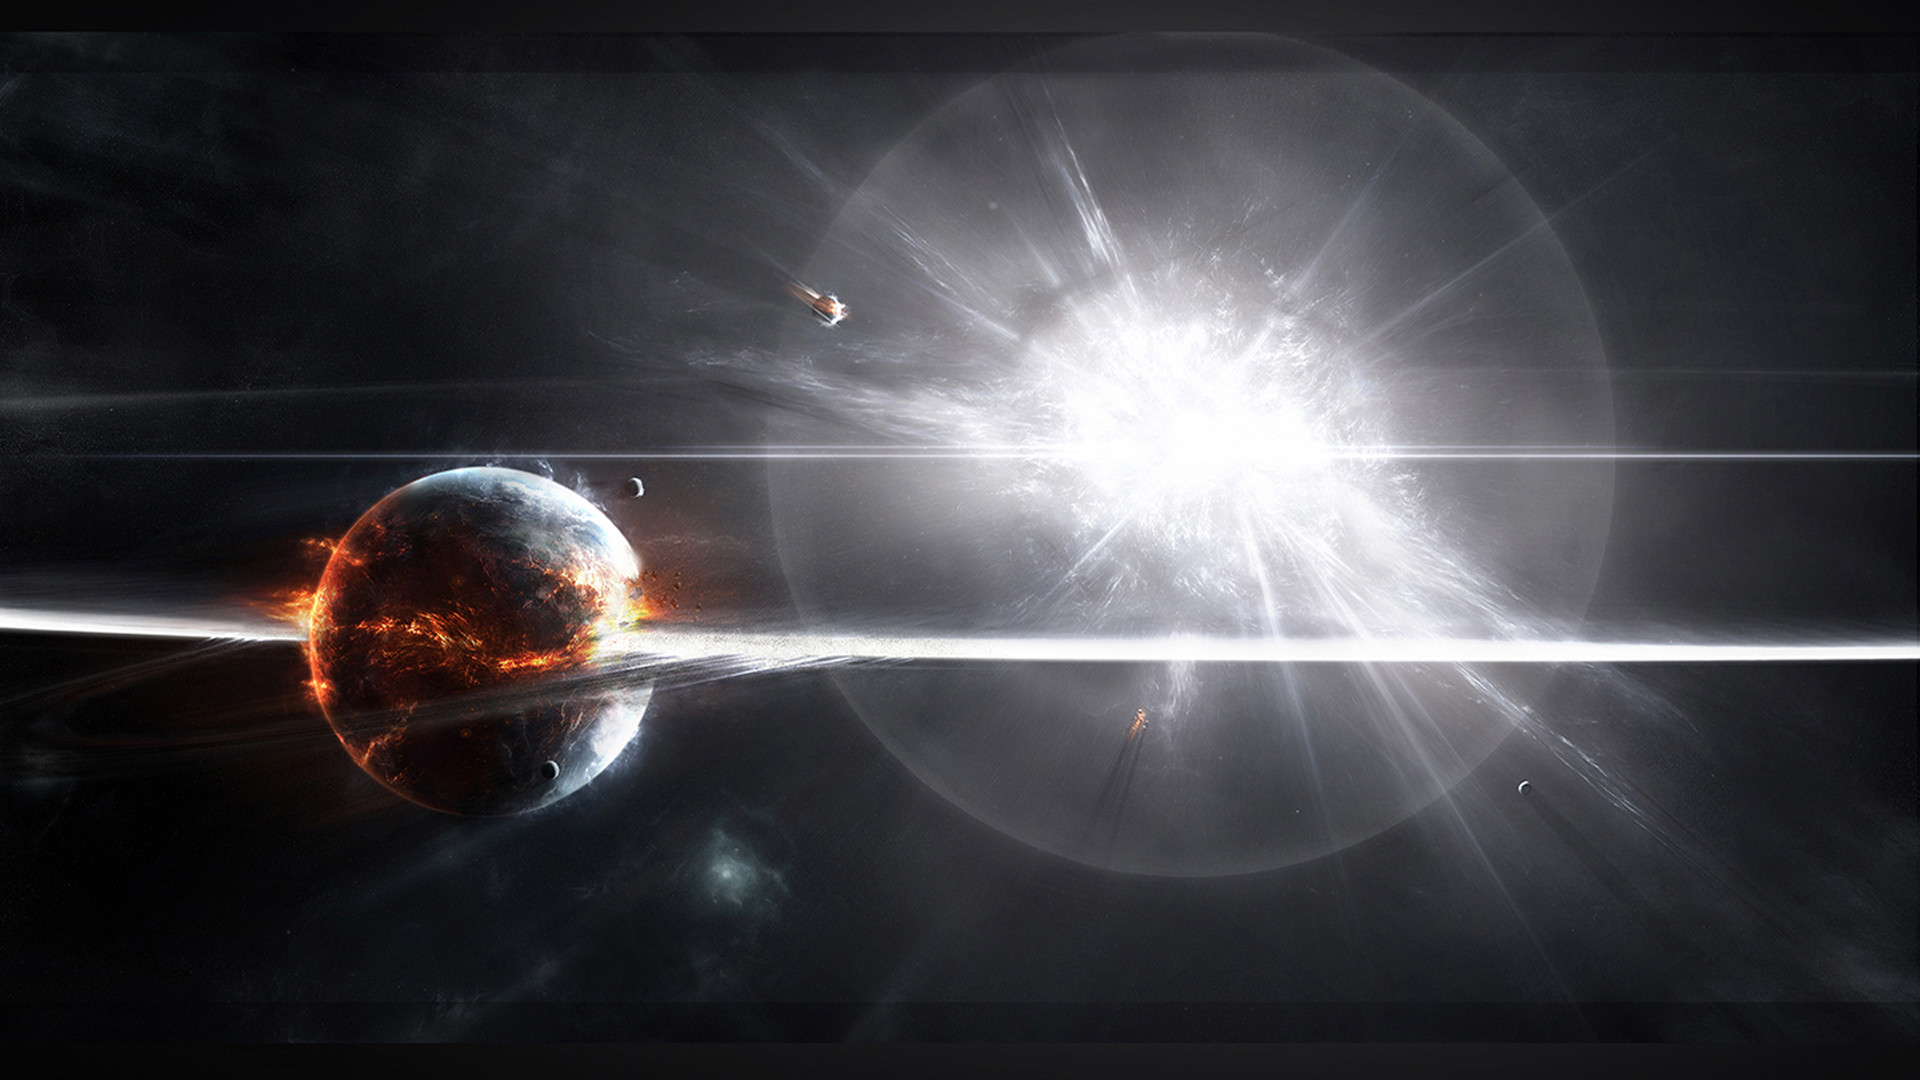 Supernova HD Wallpaper (page 3) – Pics about space